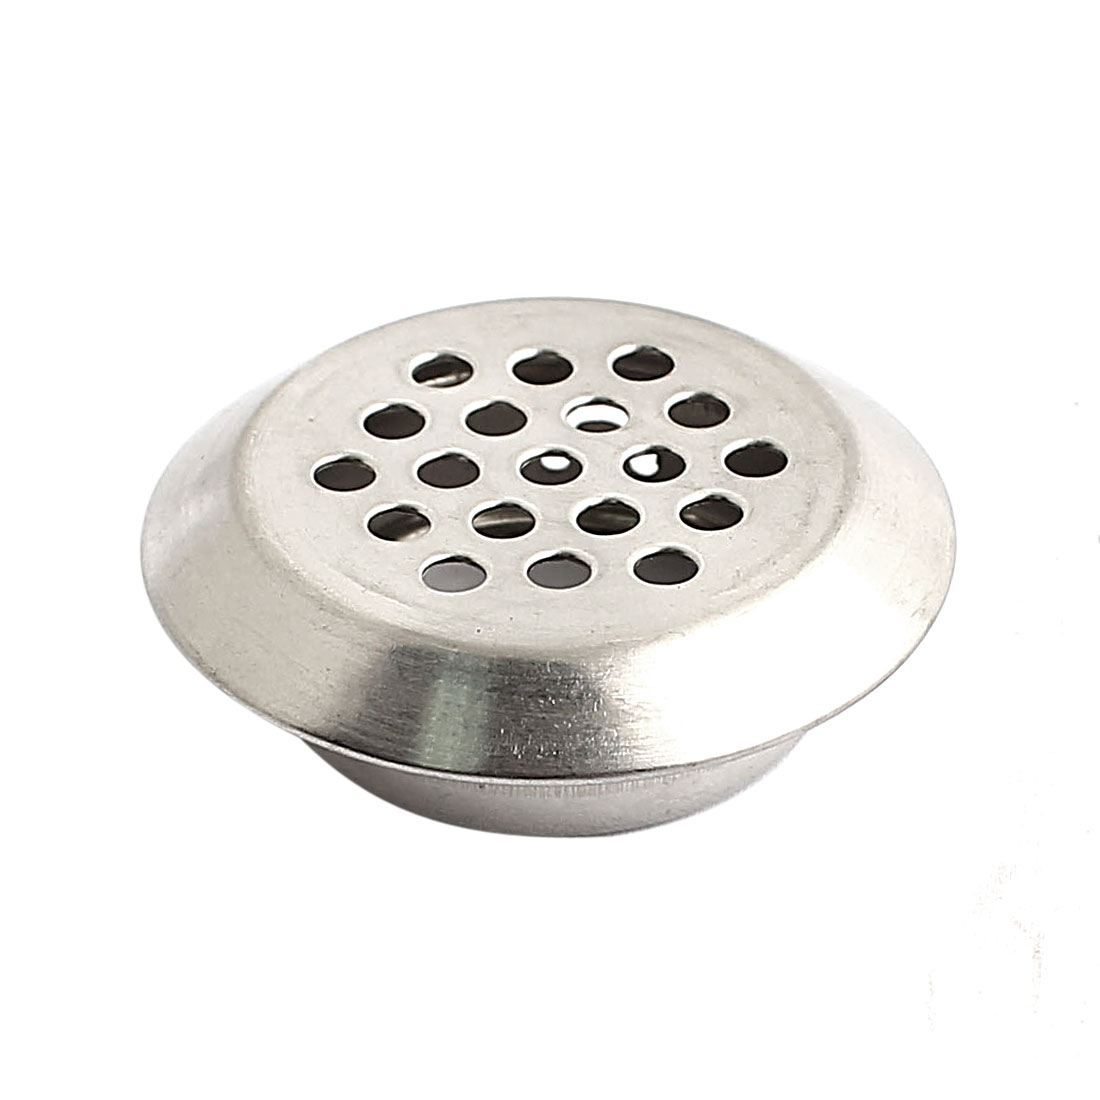 Wall Ceiling 29mm Bottom Dia Air Vent Grille Circle Ventilation Cover